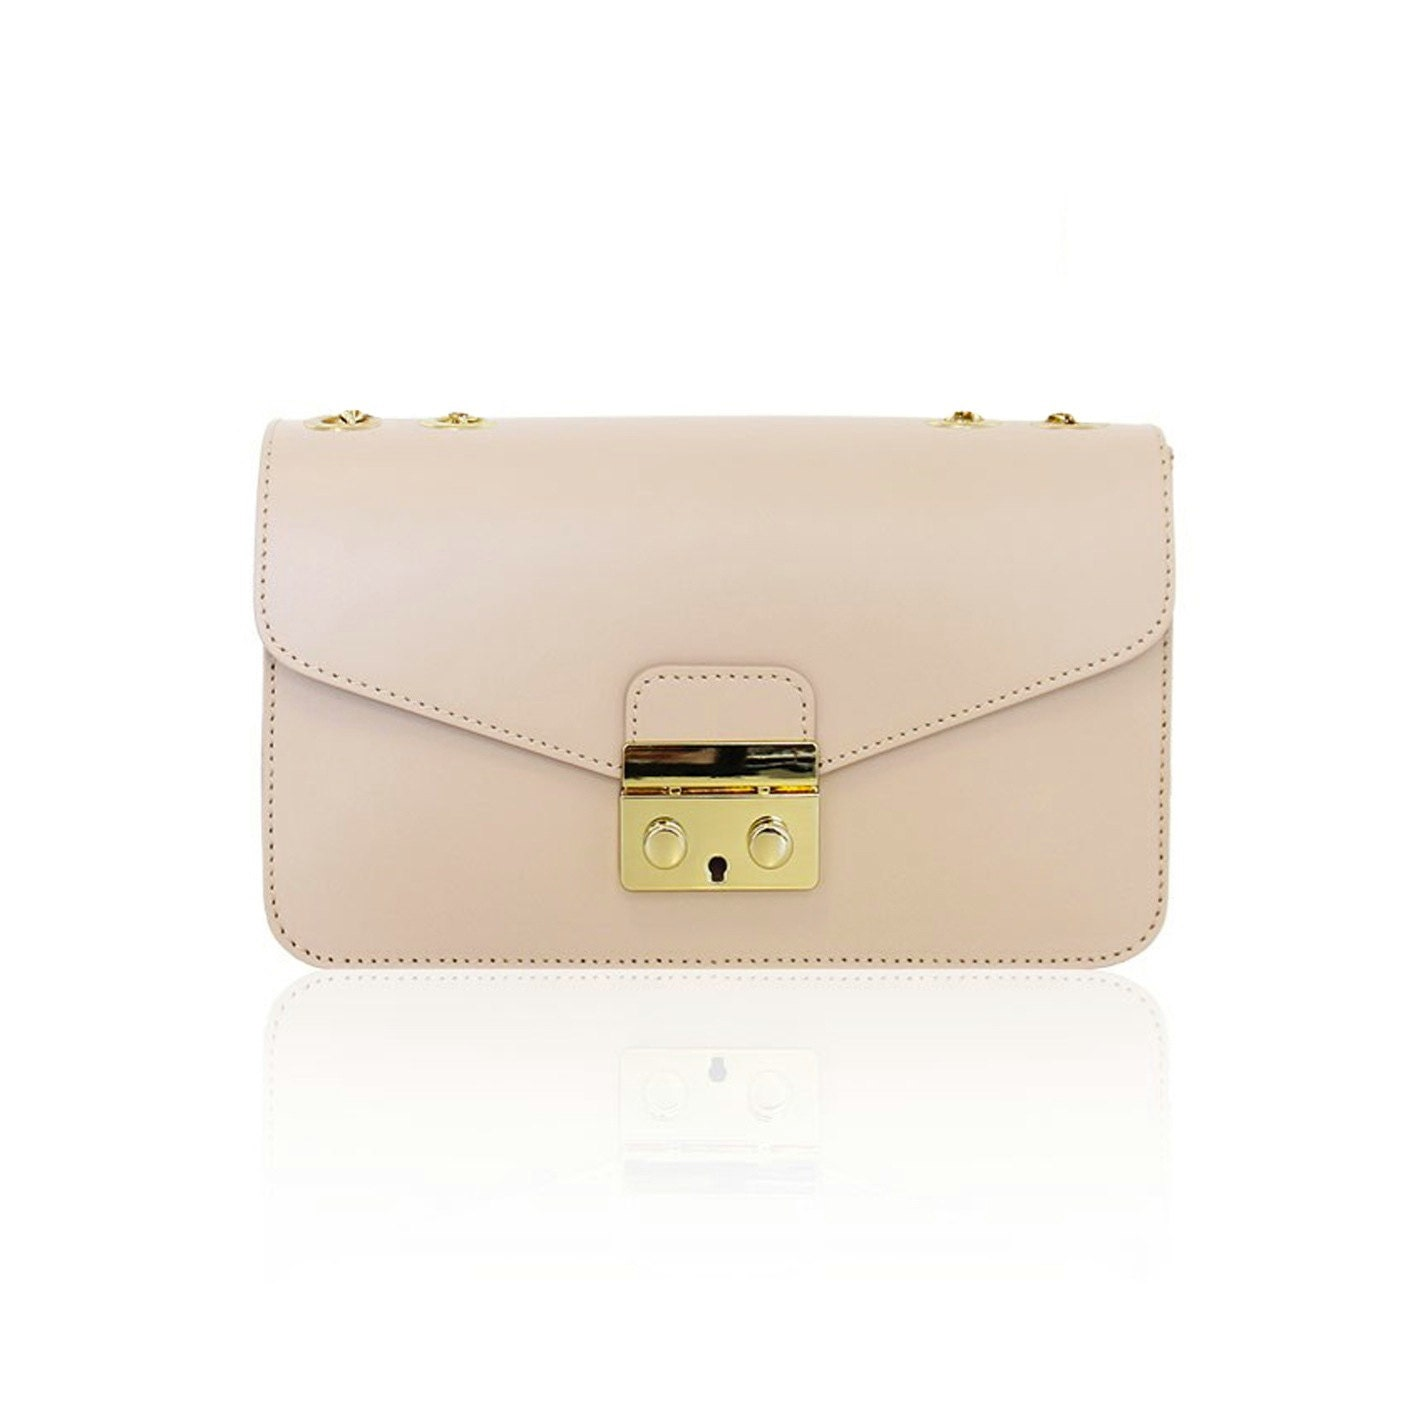 b36983d5be3f9 AMELIA Italian Baguette clutch mini bag with light gold plated chain smooth  leather, evening clutch mini bag, light gold snap, Italian bag